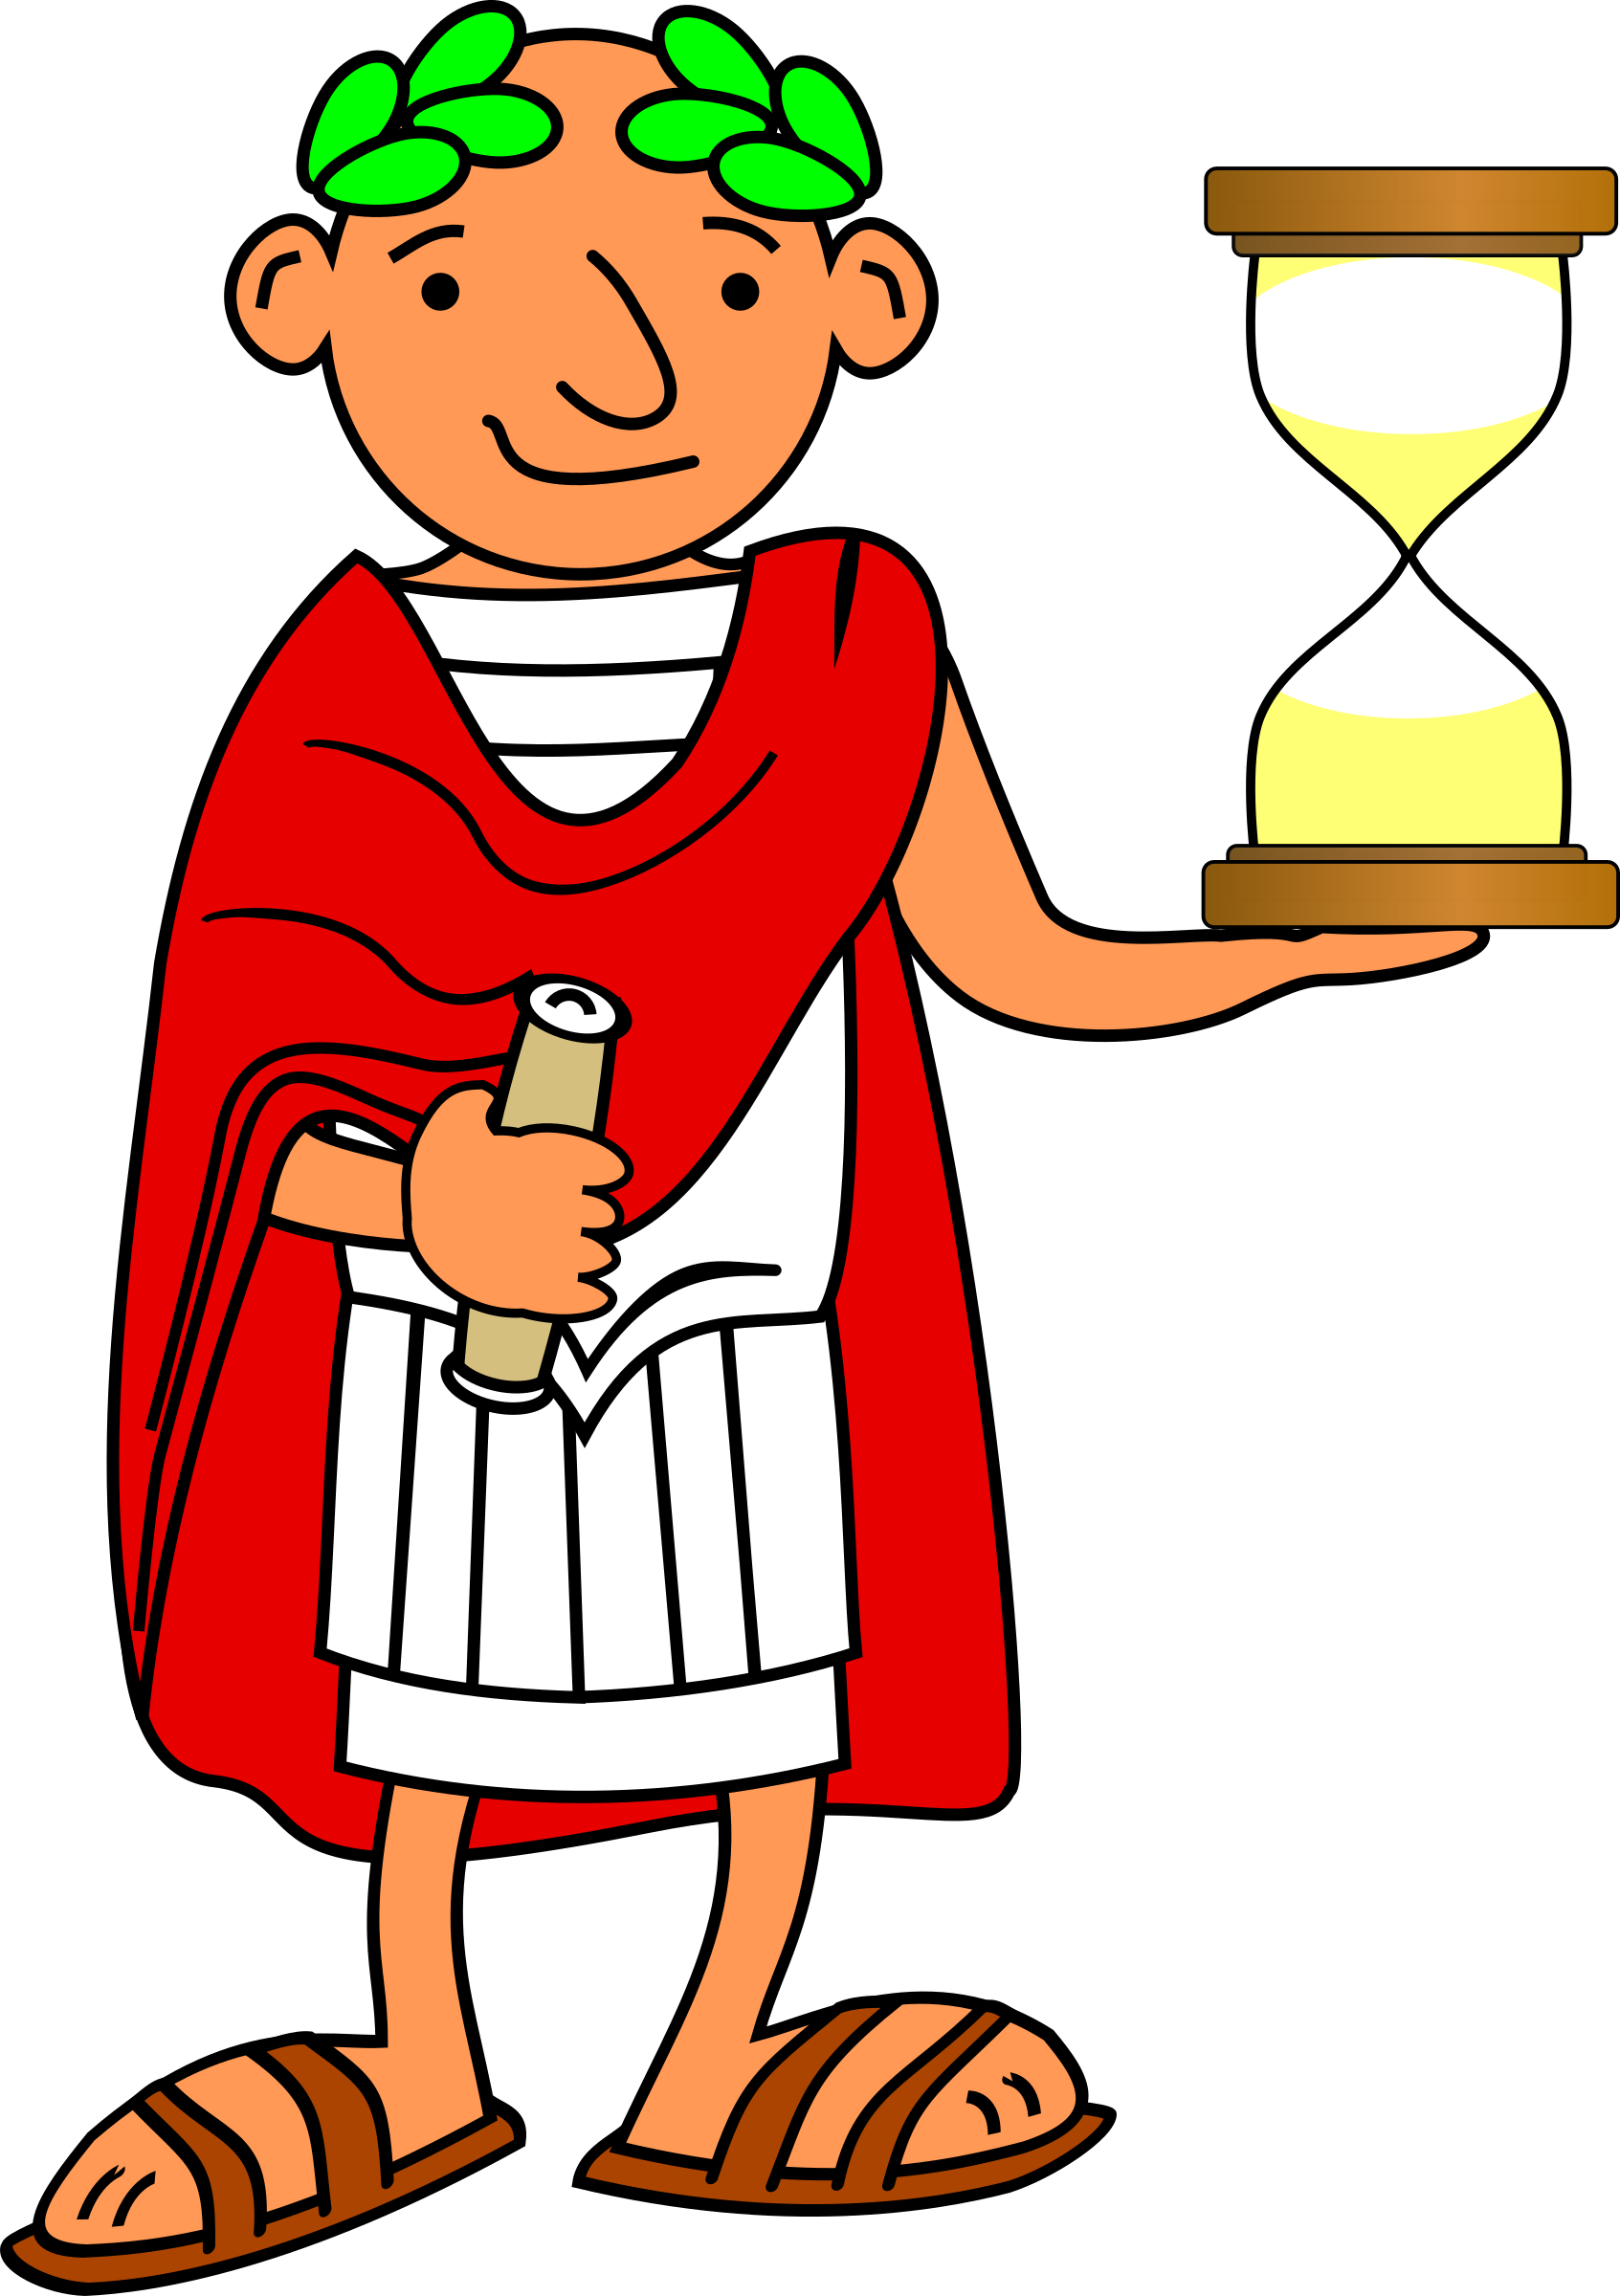 Ancient rome clip art. Hourglass clipart old